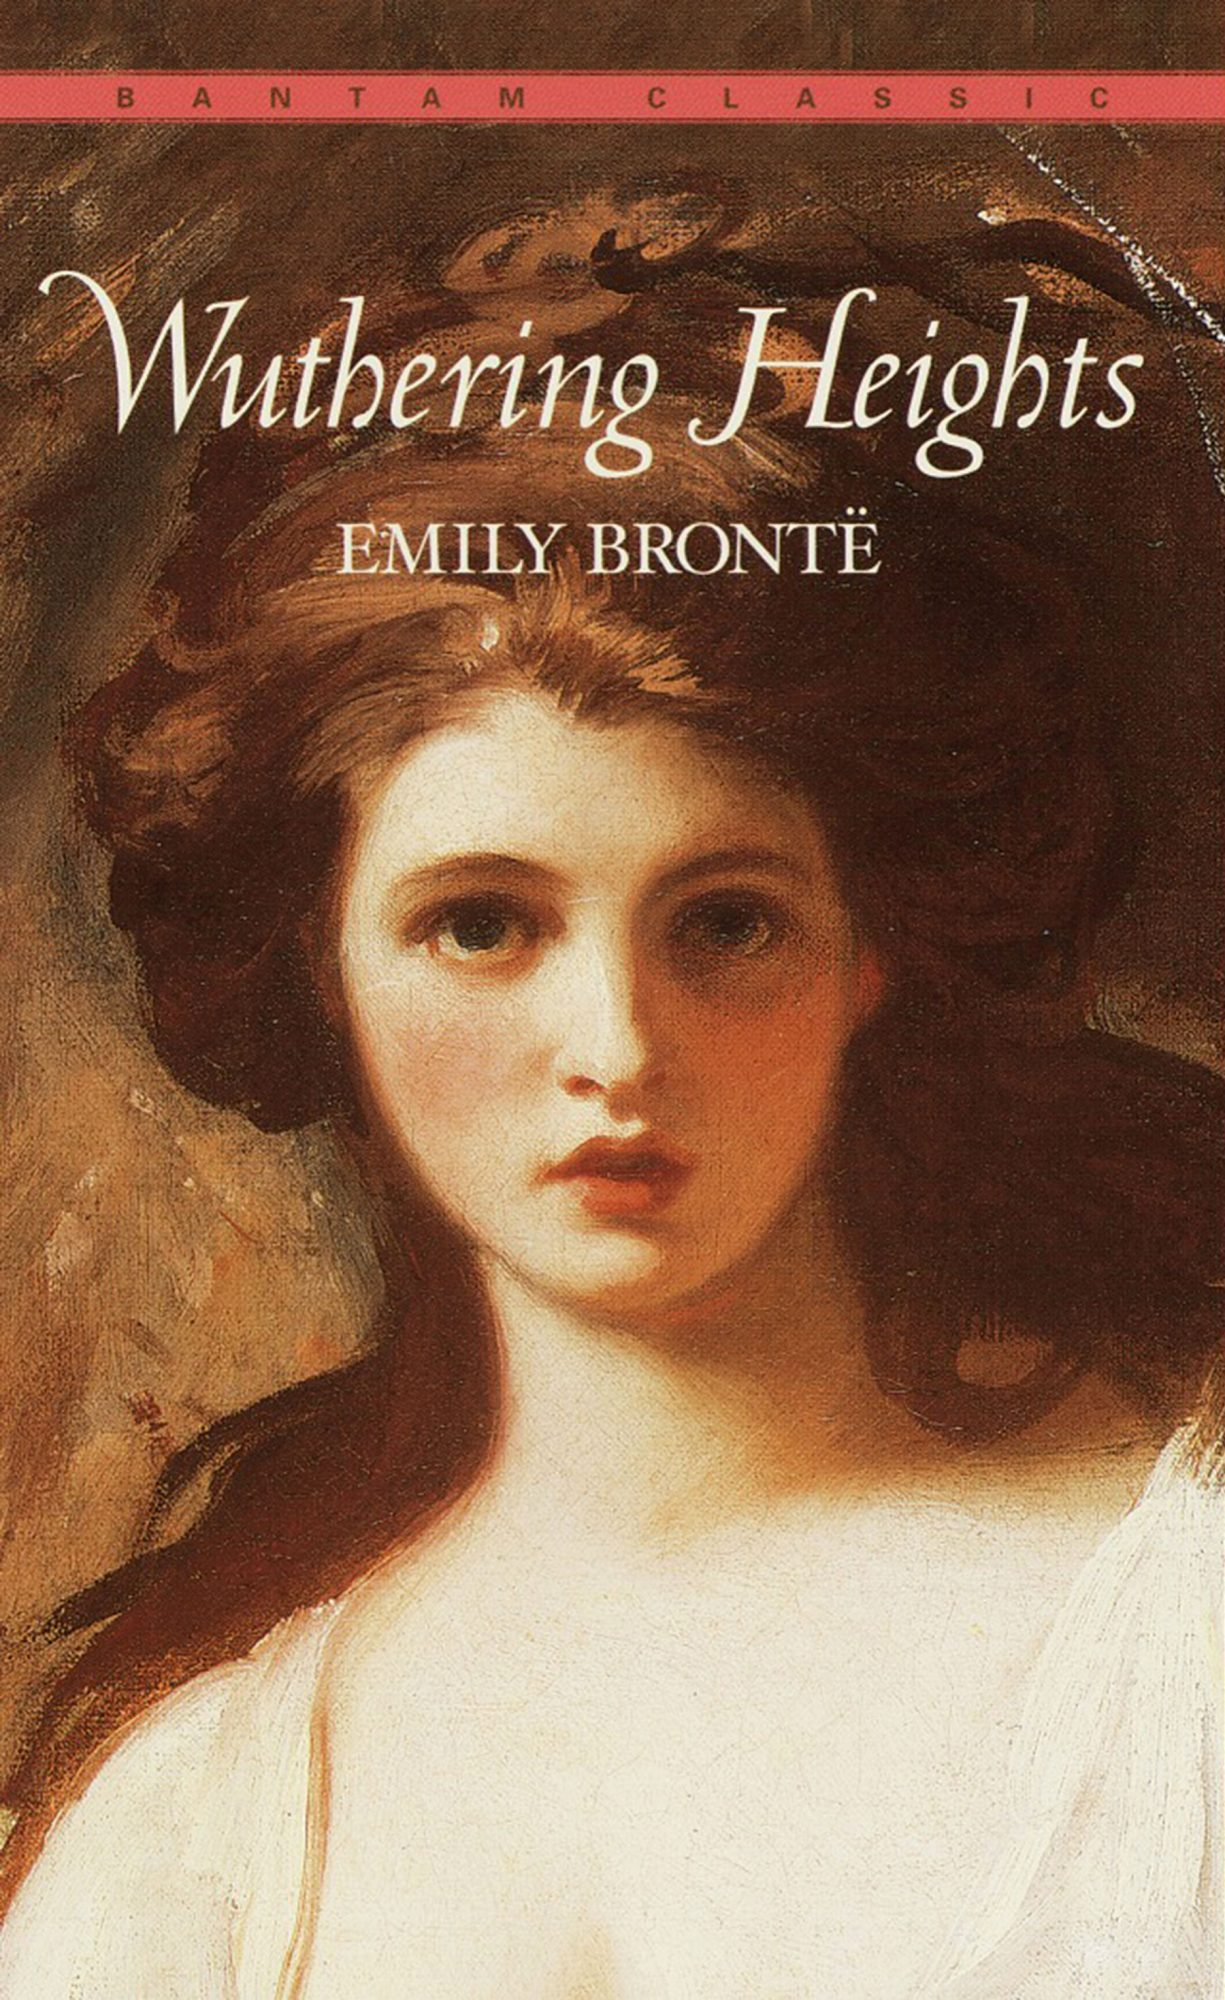 Wuthering Heights - paperback (8/1/83) by Emily Bronte